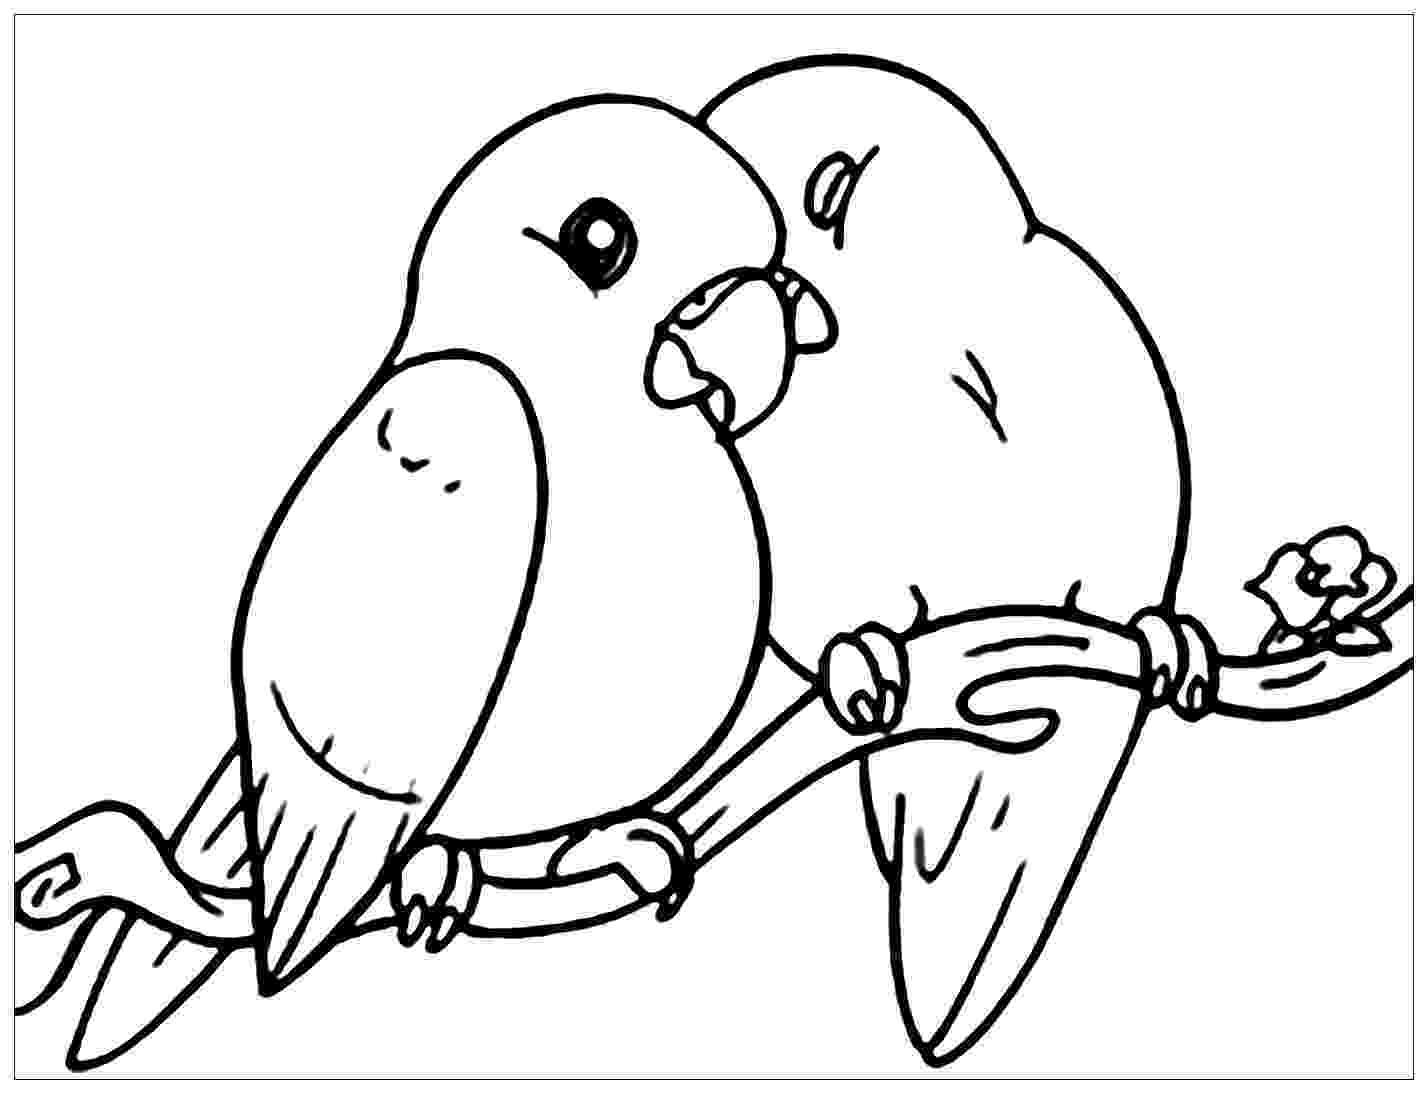 pictures of birds to colour birds to download birds kids coloring pages colour pictures birds of to